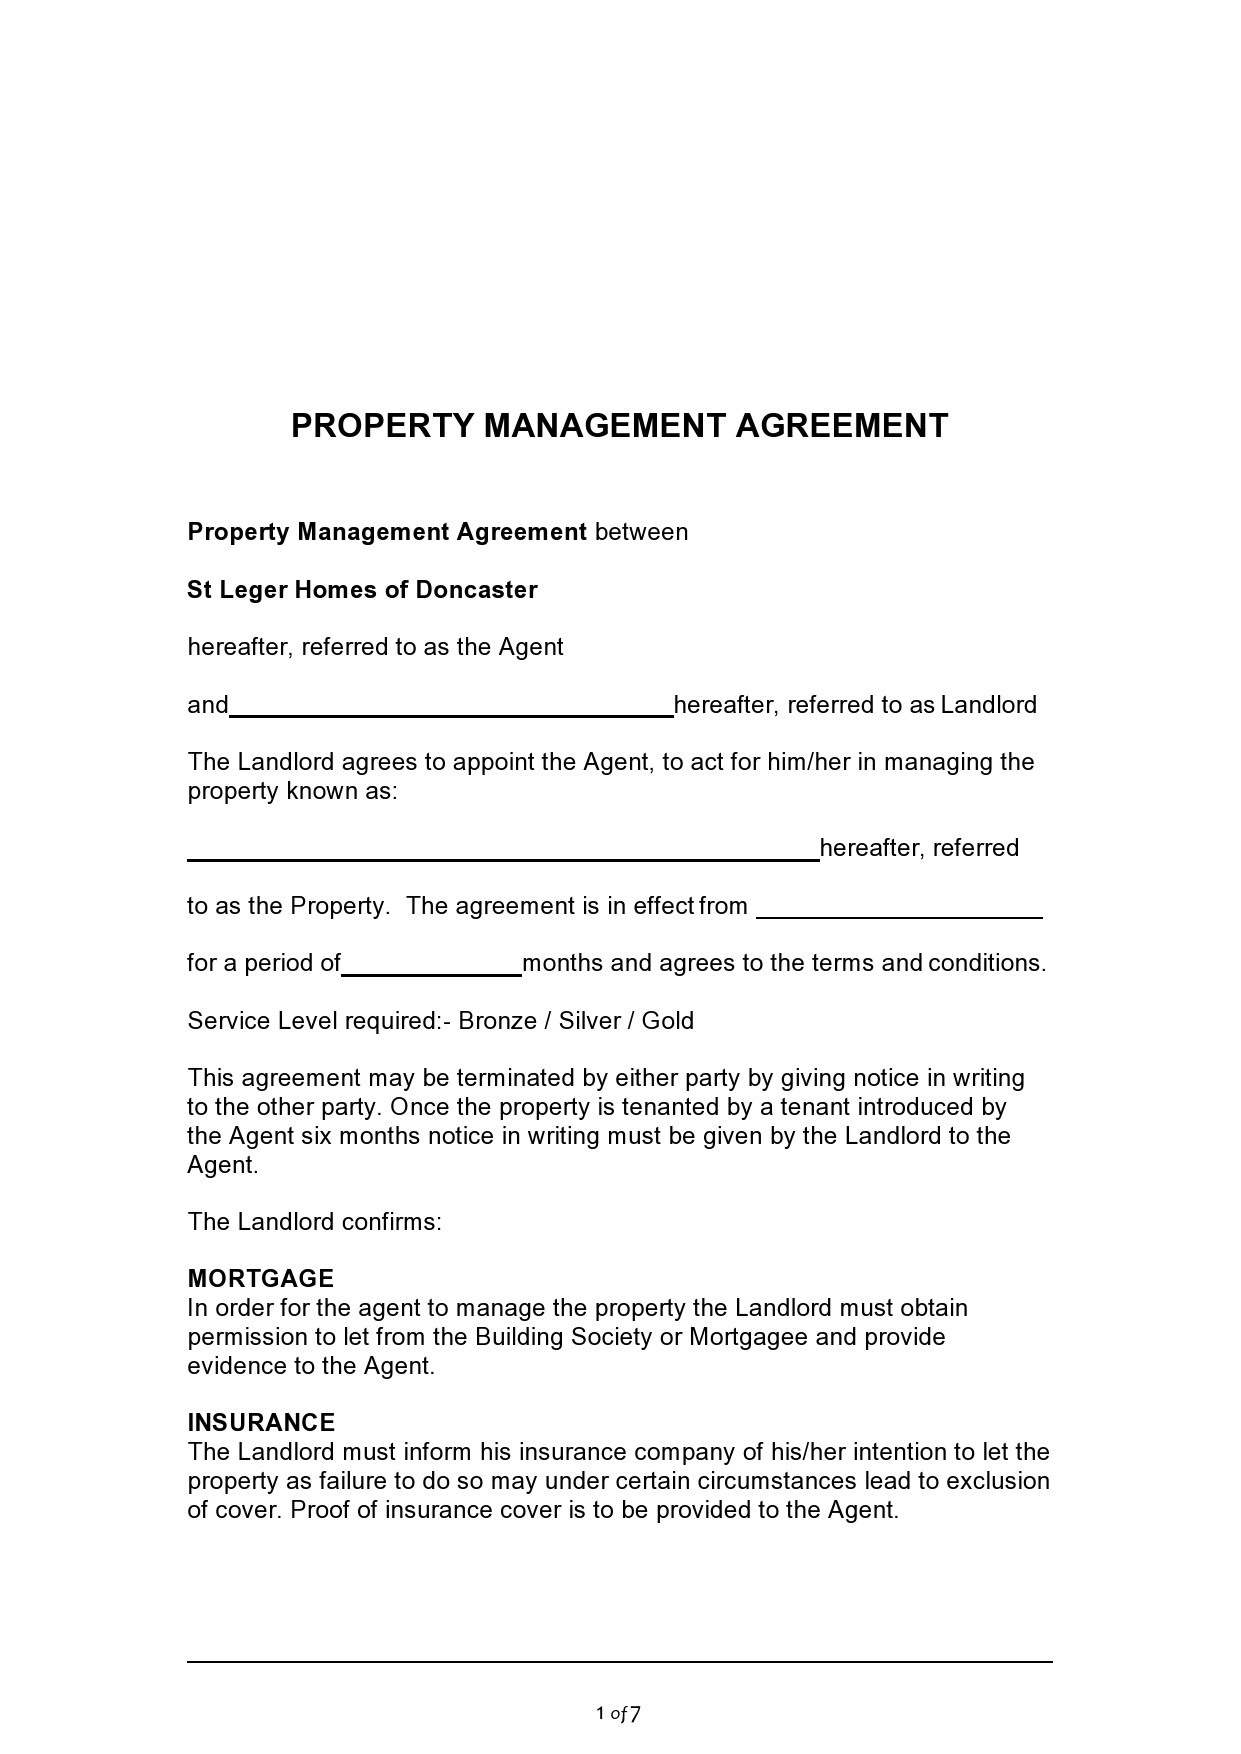 Free property management agreement 12